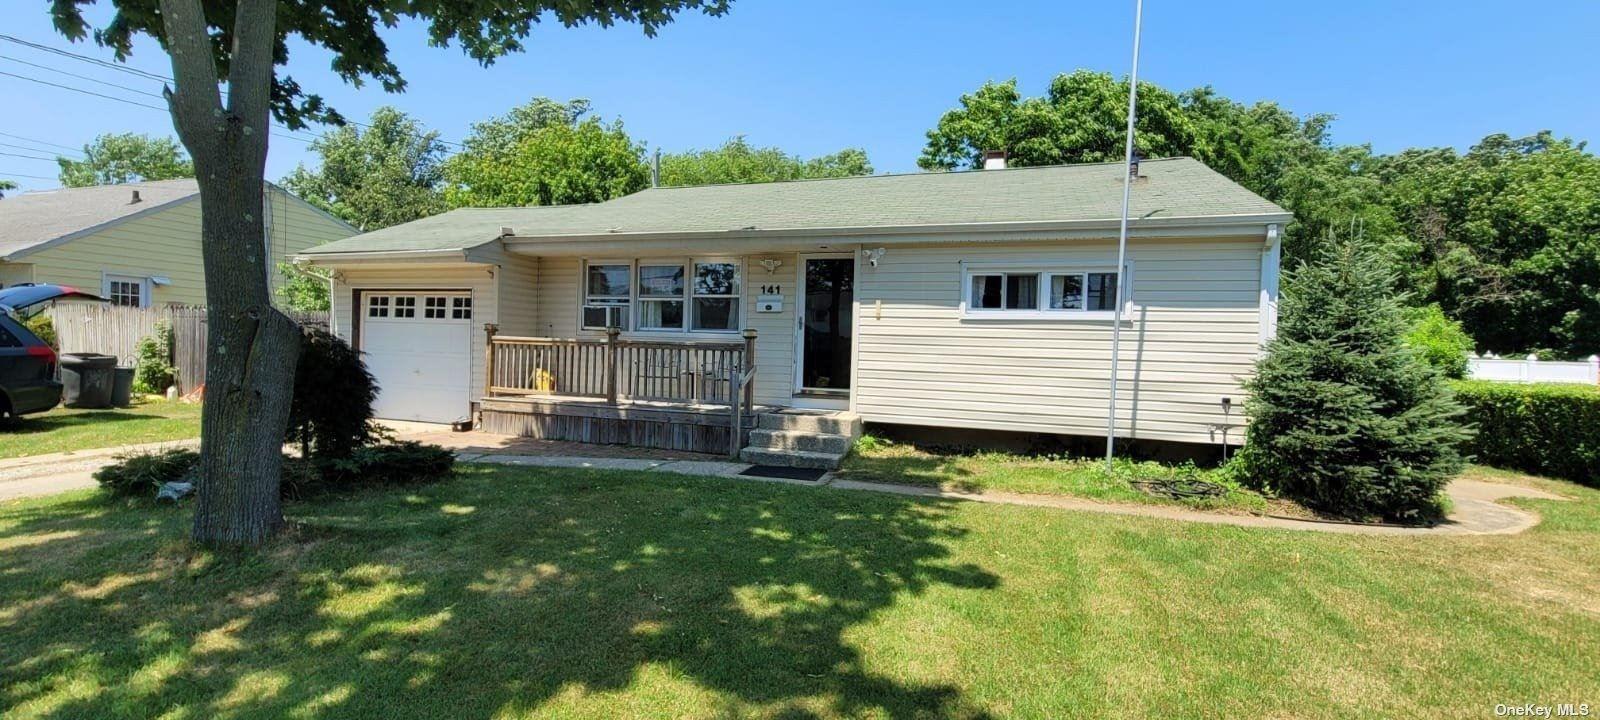 141 2nd Avenue, Brentwood, NY 11717 - MLS#: 3326491